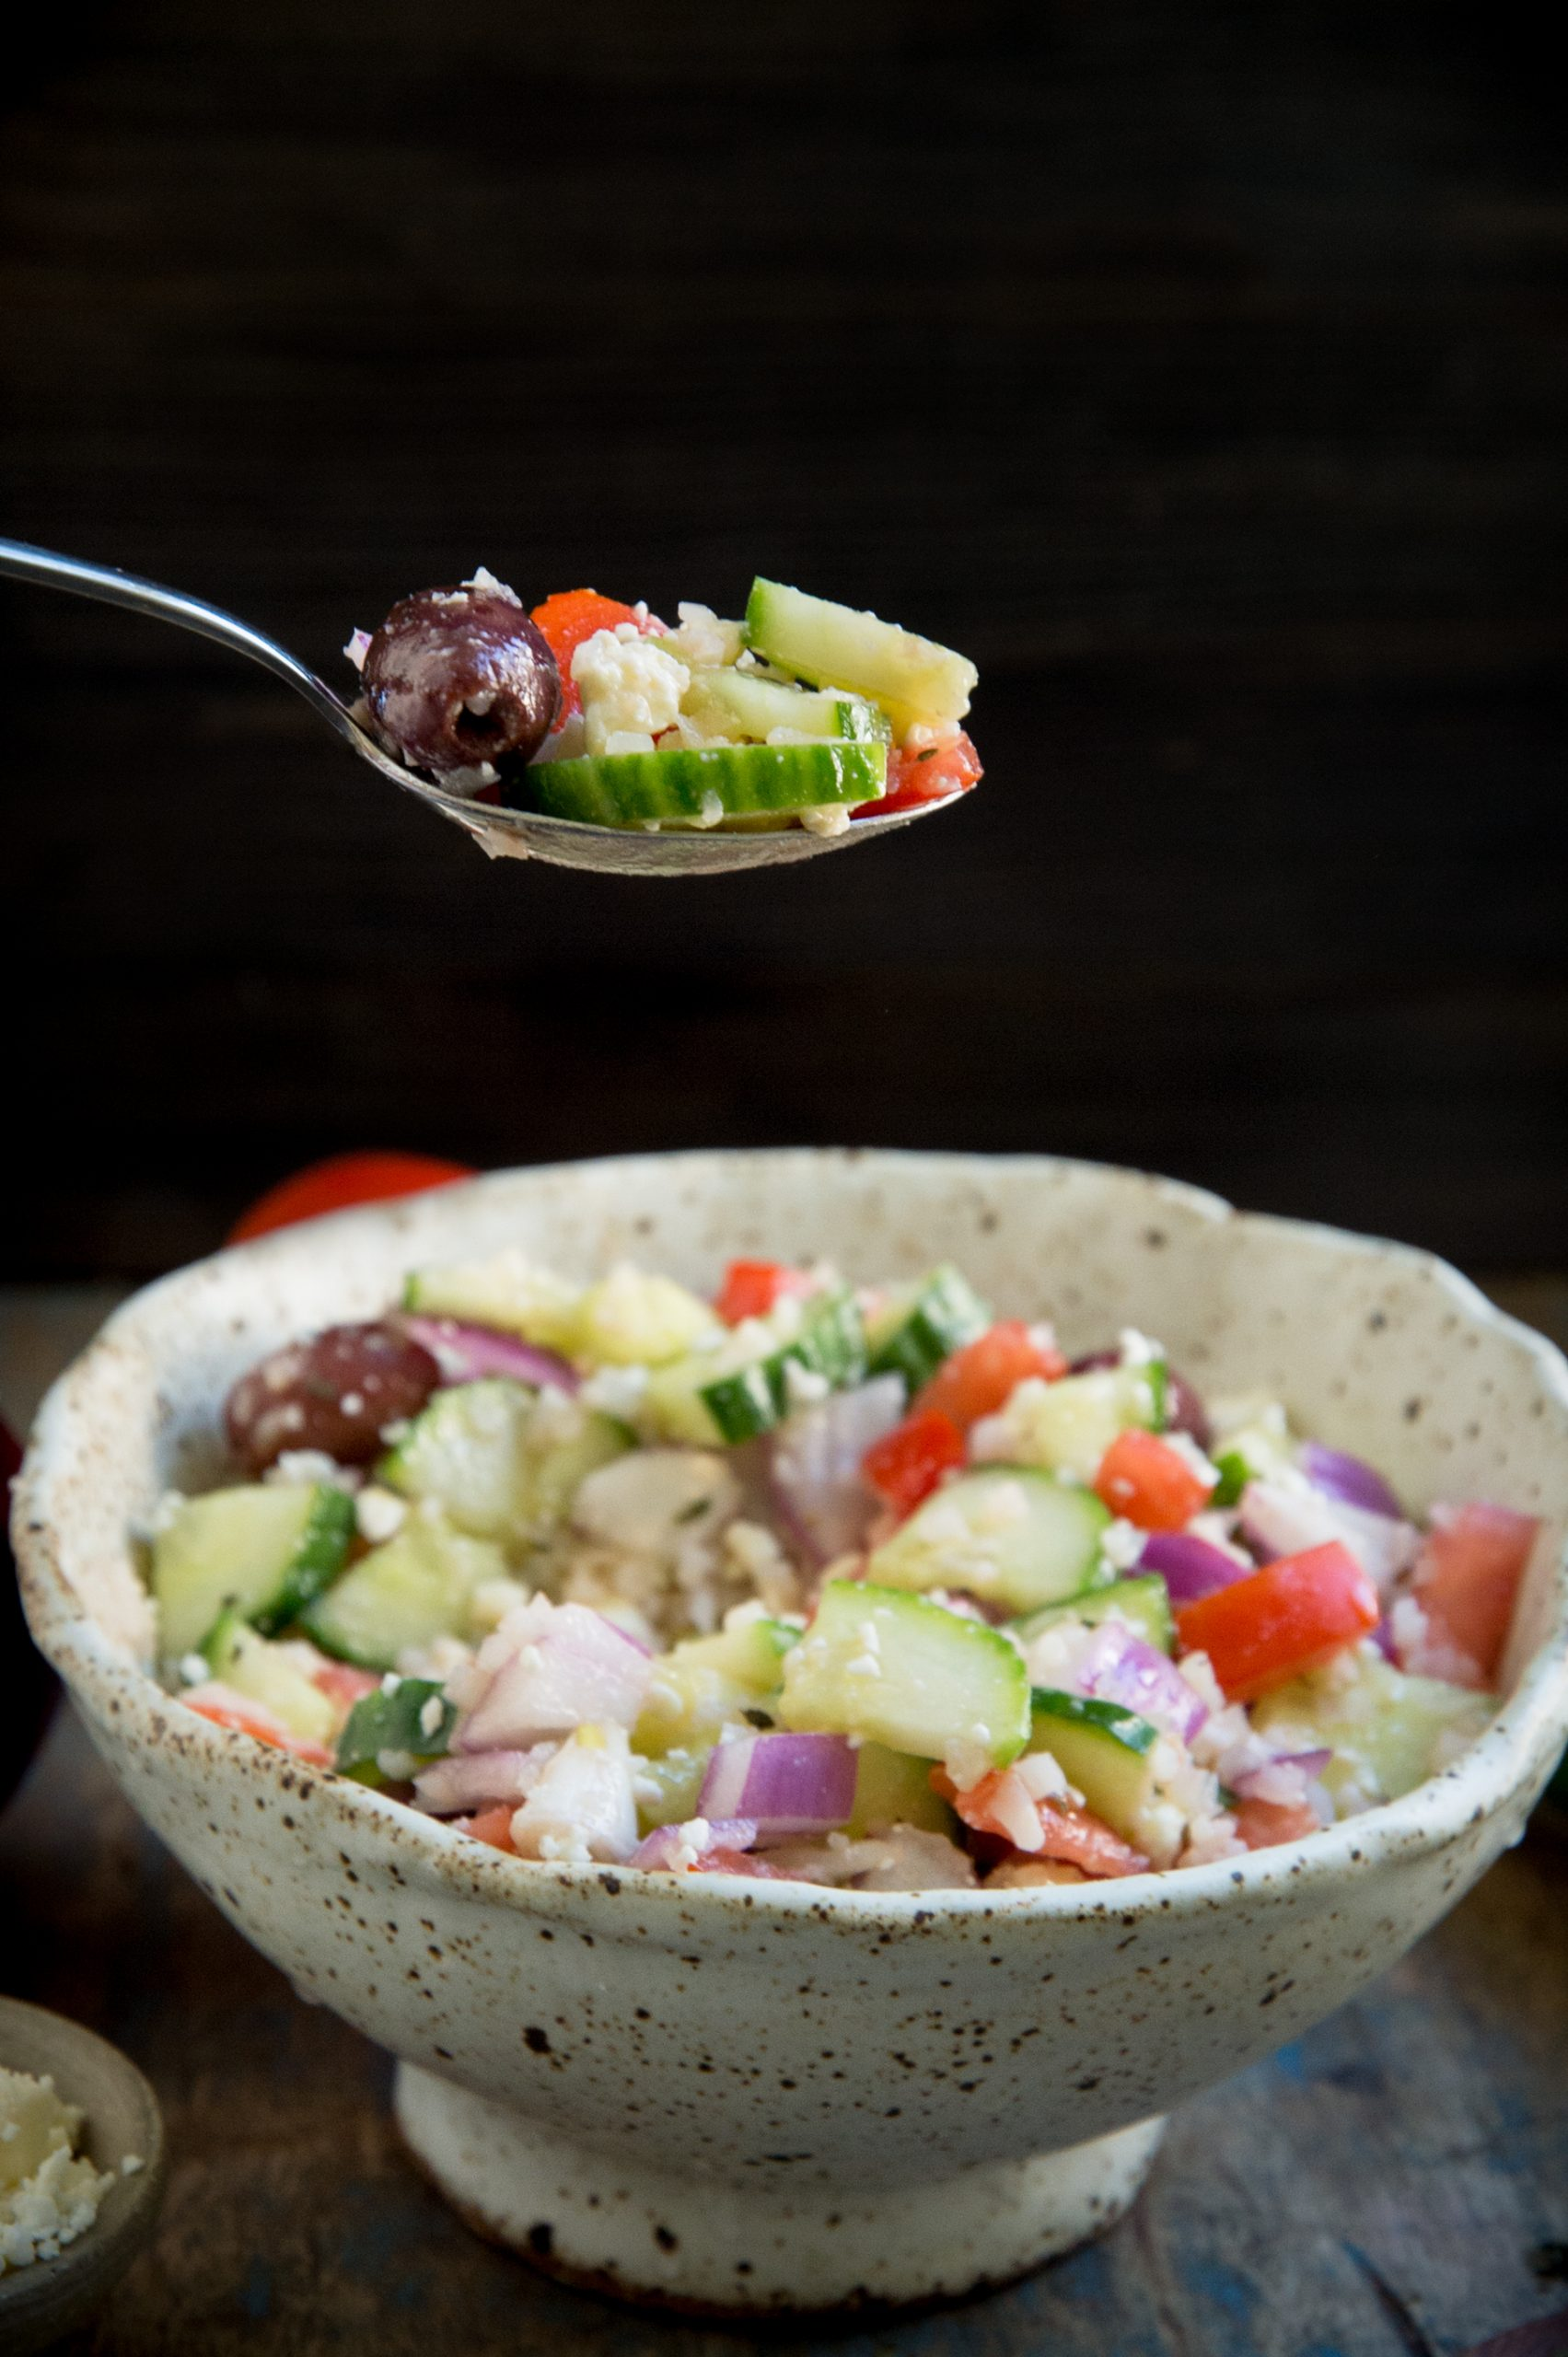 Mediterranean Salad with cucumbers and tomatoes. Bite shot.